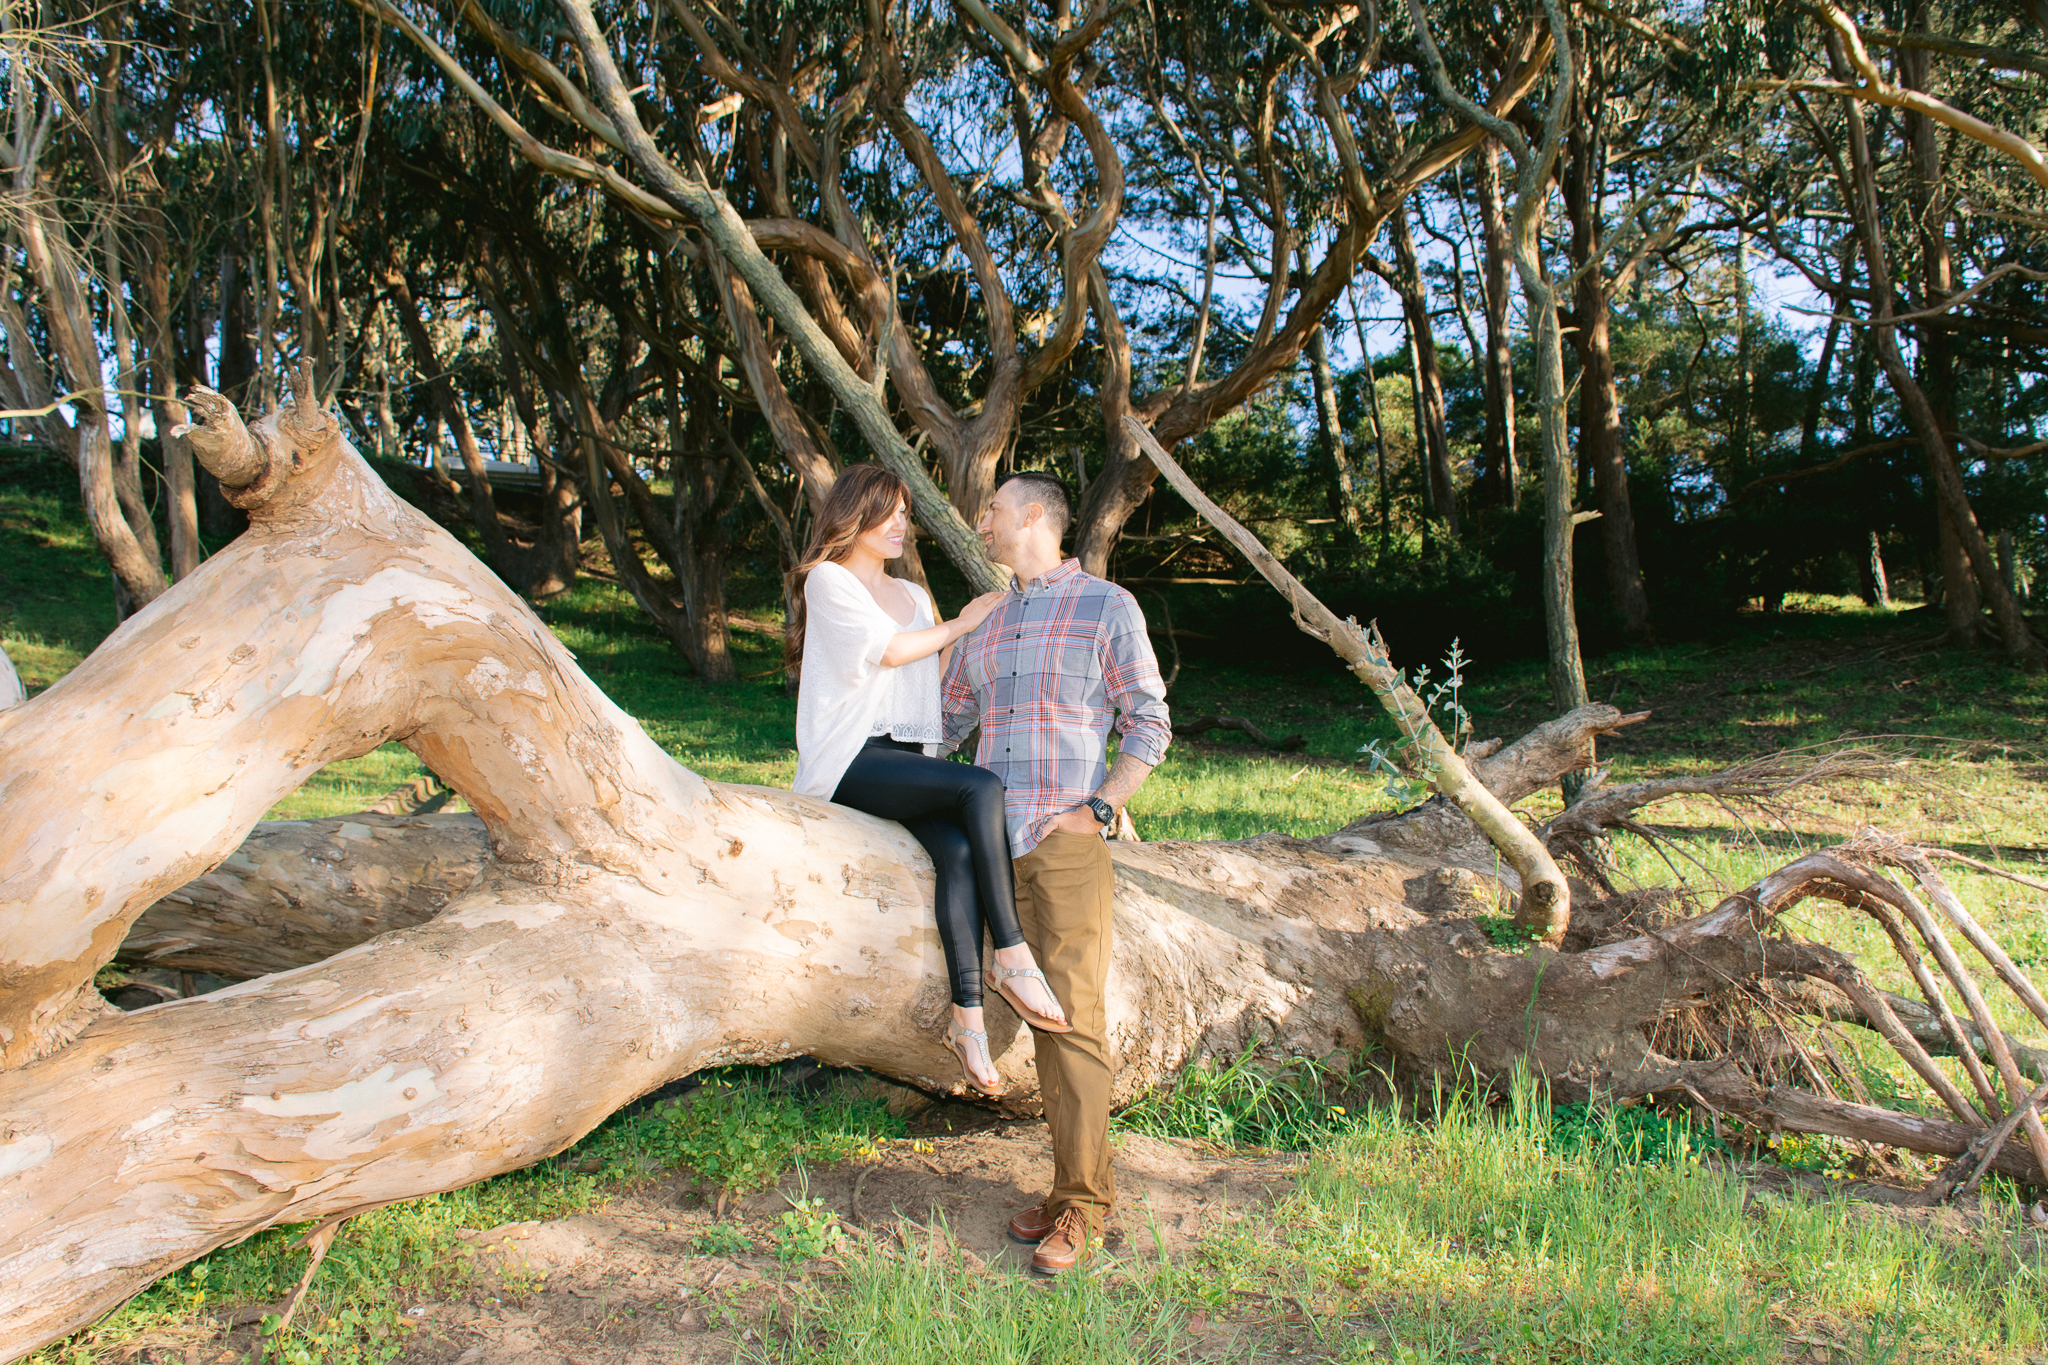 Woman sitting on fallen tree in San Francisco park looking into the eyes of her fiance.